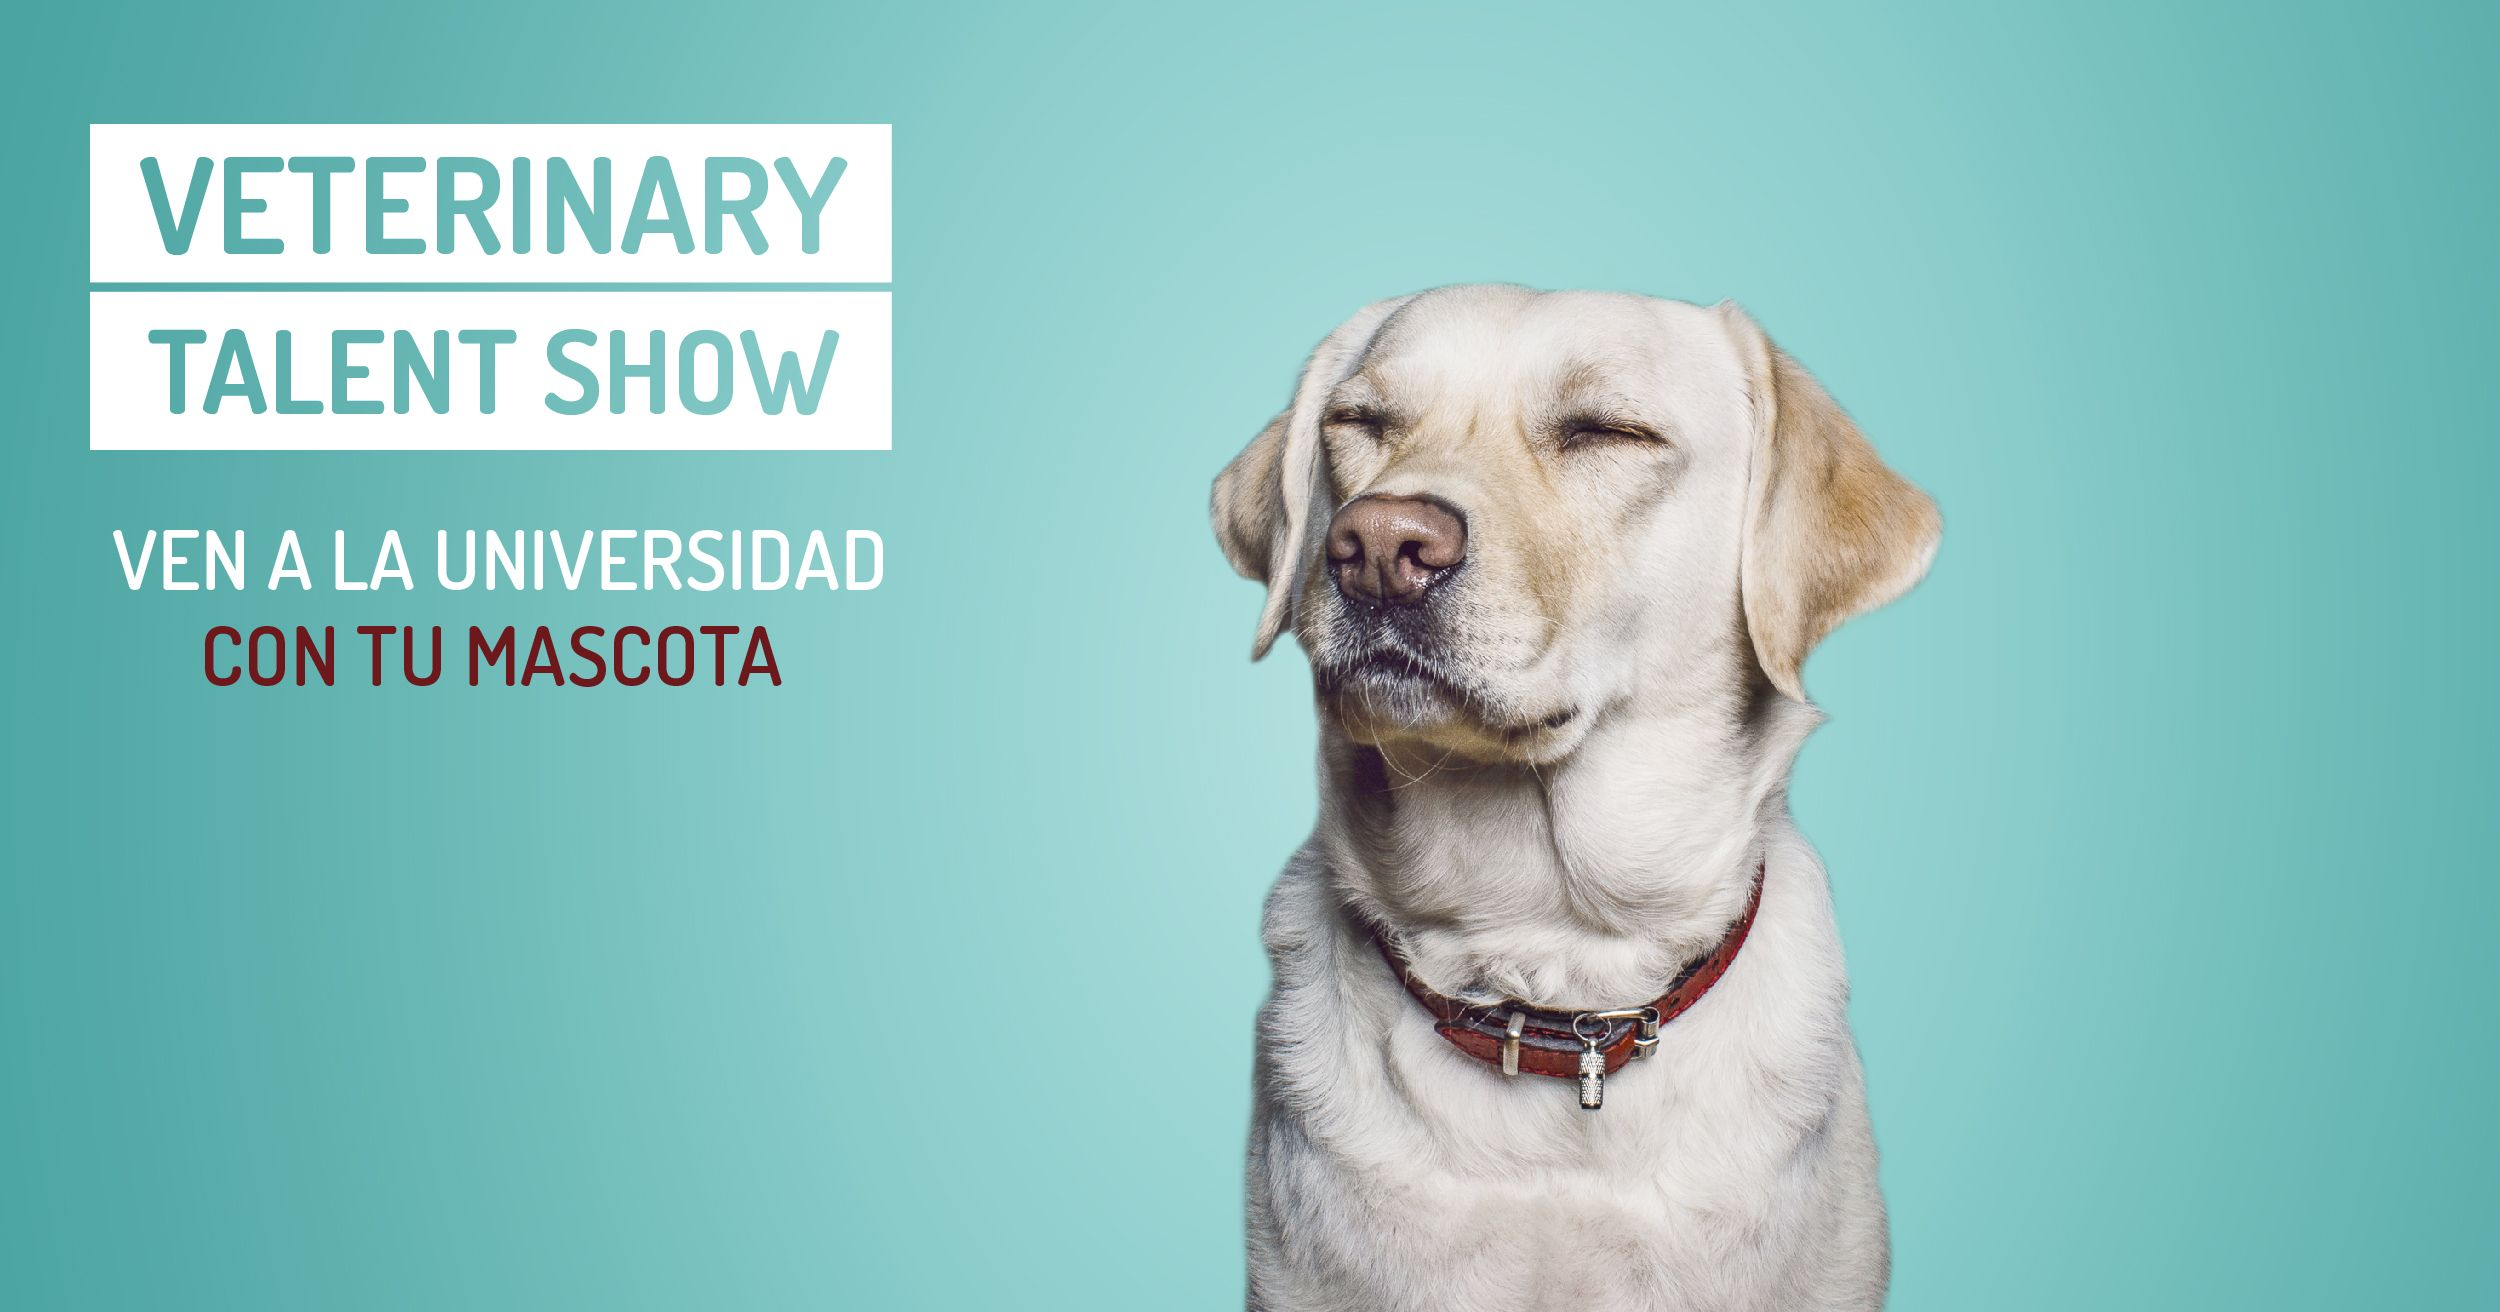 Cartel del Veterinary talent show